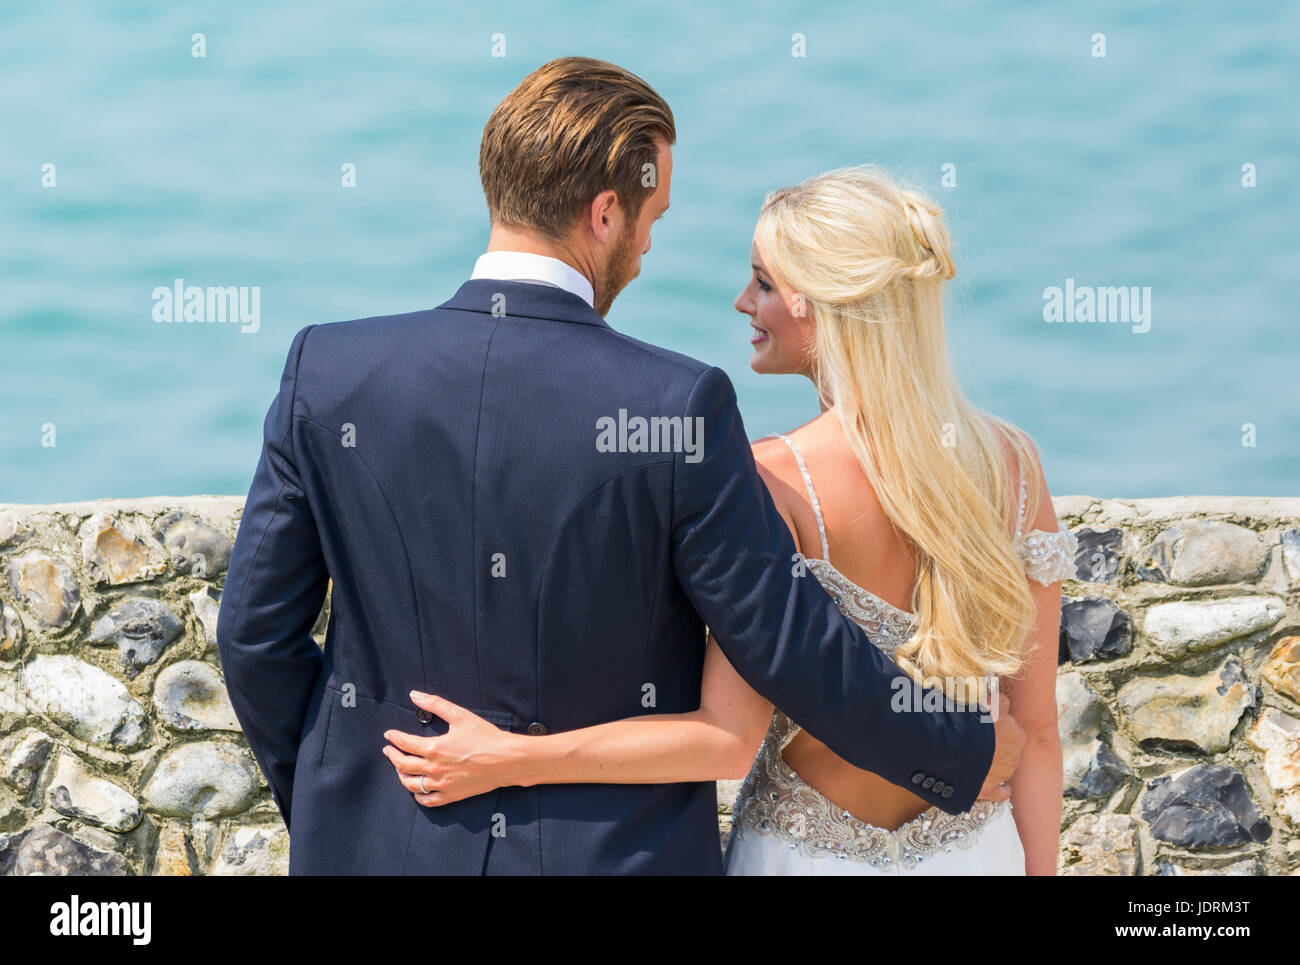 Bride and Groom on a beach having photos taken for their wedding day. Married couple. Getting married. Day of marriage. Stock Photo